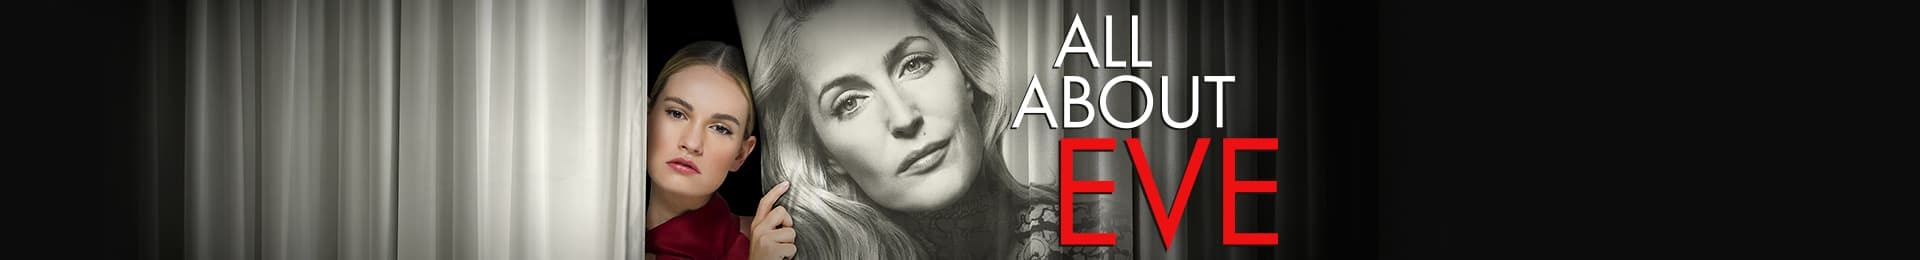 All About Eve banner image